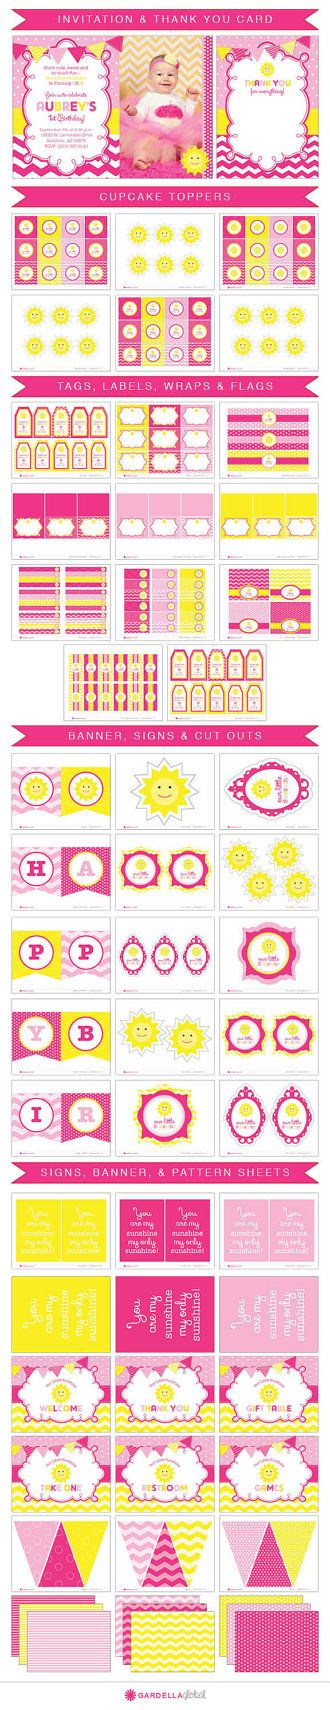 You are my Sunshine Birthday Invitation, Our little sunshine Birthday Invitation, Sunshine Birthday Invitation, You are my Sunshine invitation, our little sunshine invitation, sunshine invitation, our little sunshine invite, sunshine invite, Birthday Invitation, Party, Lemonade Invite, Lemonade Invitation, Lemonade Birthday, Photo, DIY, Printable, 1st Birthday, Pink, Yellow, Cupcake Toppers, Cake, Banner, Highchair Banner, Party Decorations, Sun, Chevron, Polkadots, Chalkboard